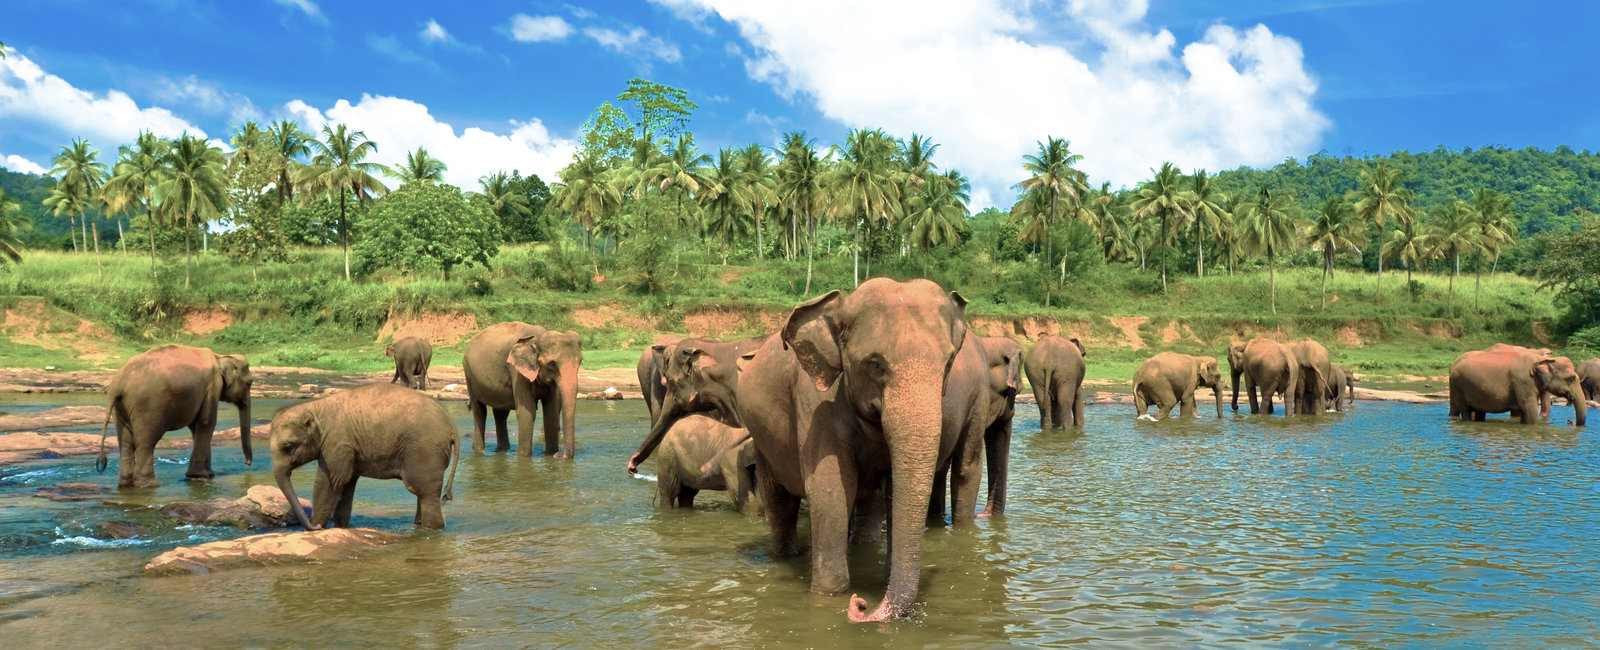 Volunteering placements in Sri Lanka